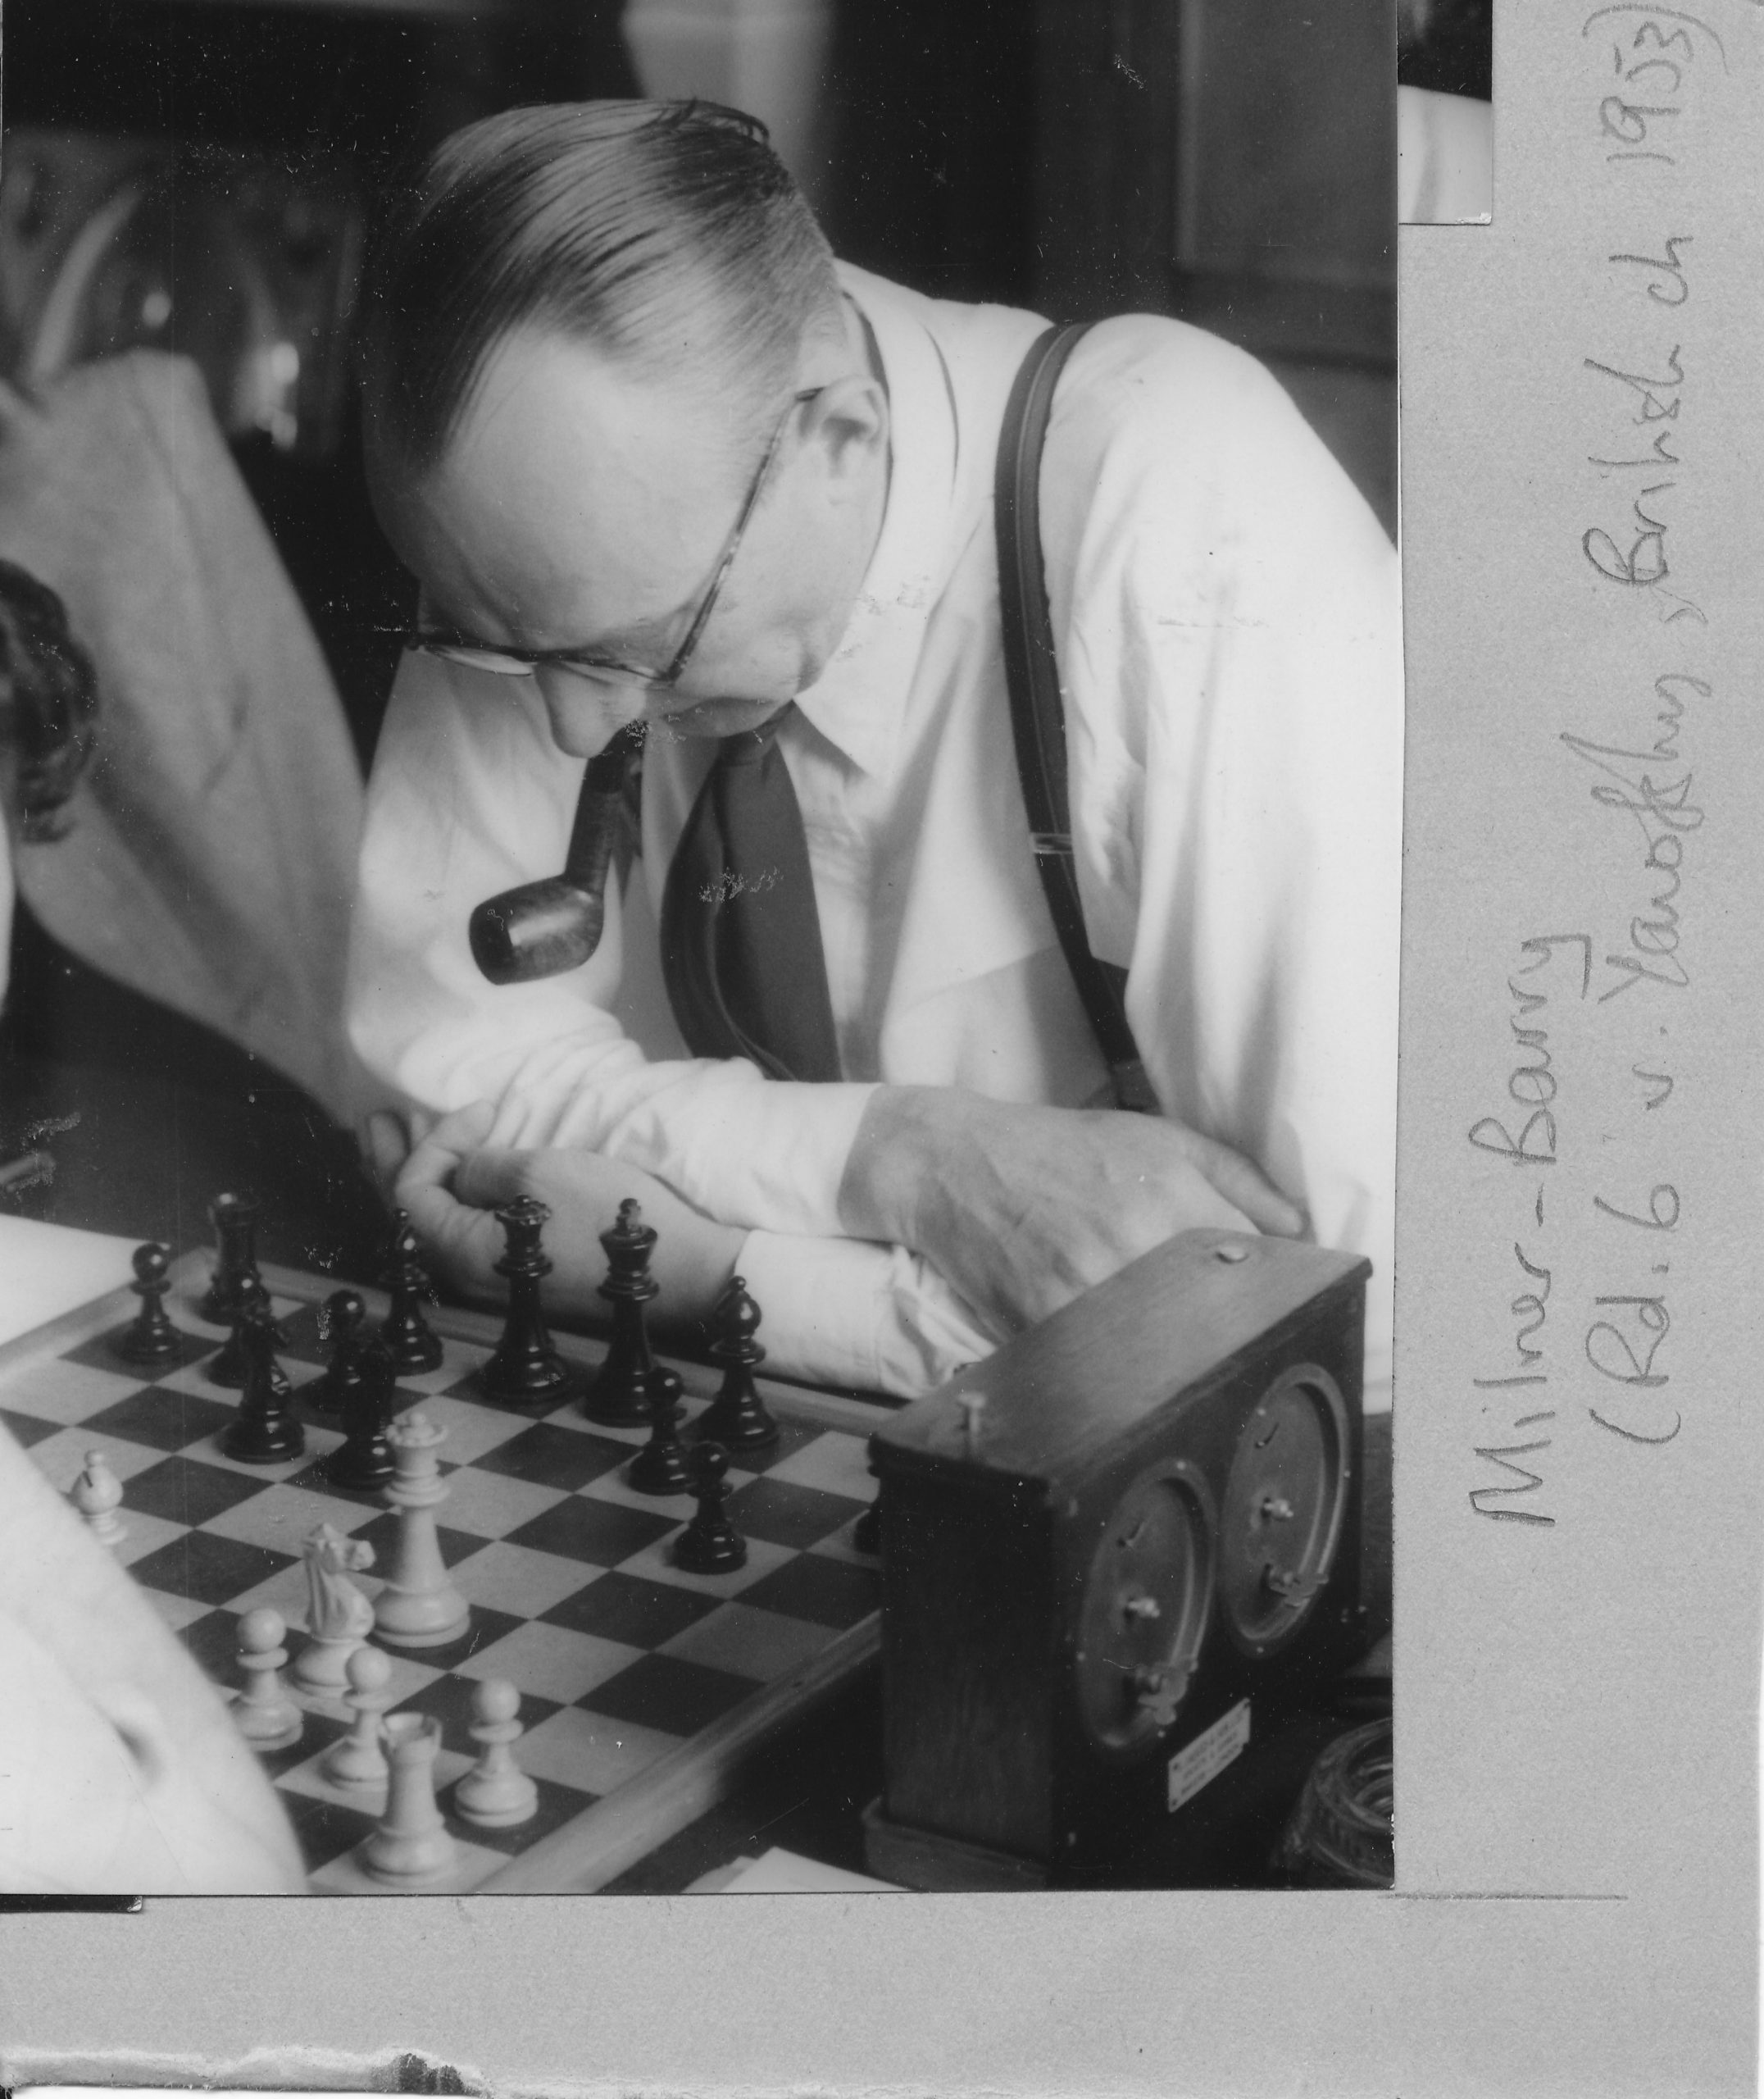 Sir Stuart Milner-Barry in play against Daniel Yanofsky from round 6 of the British Championship in Hastings, 15th August 1953